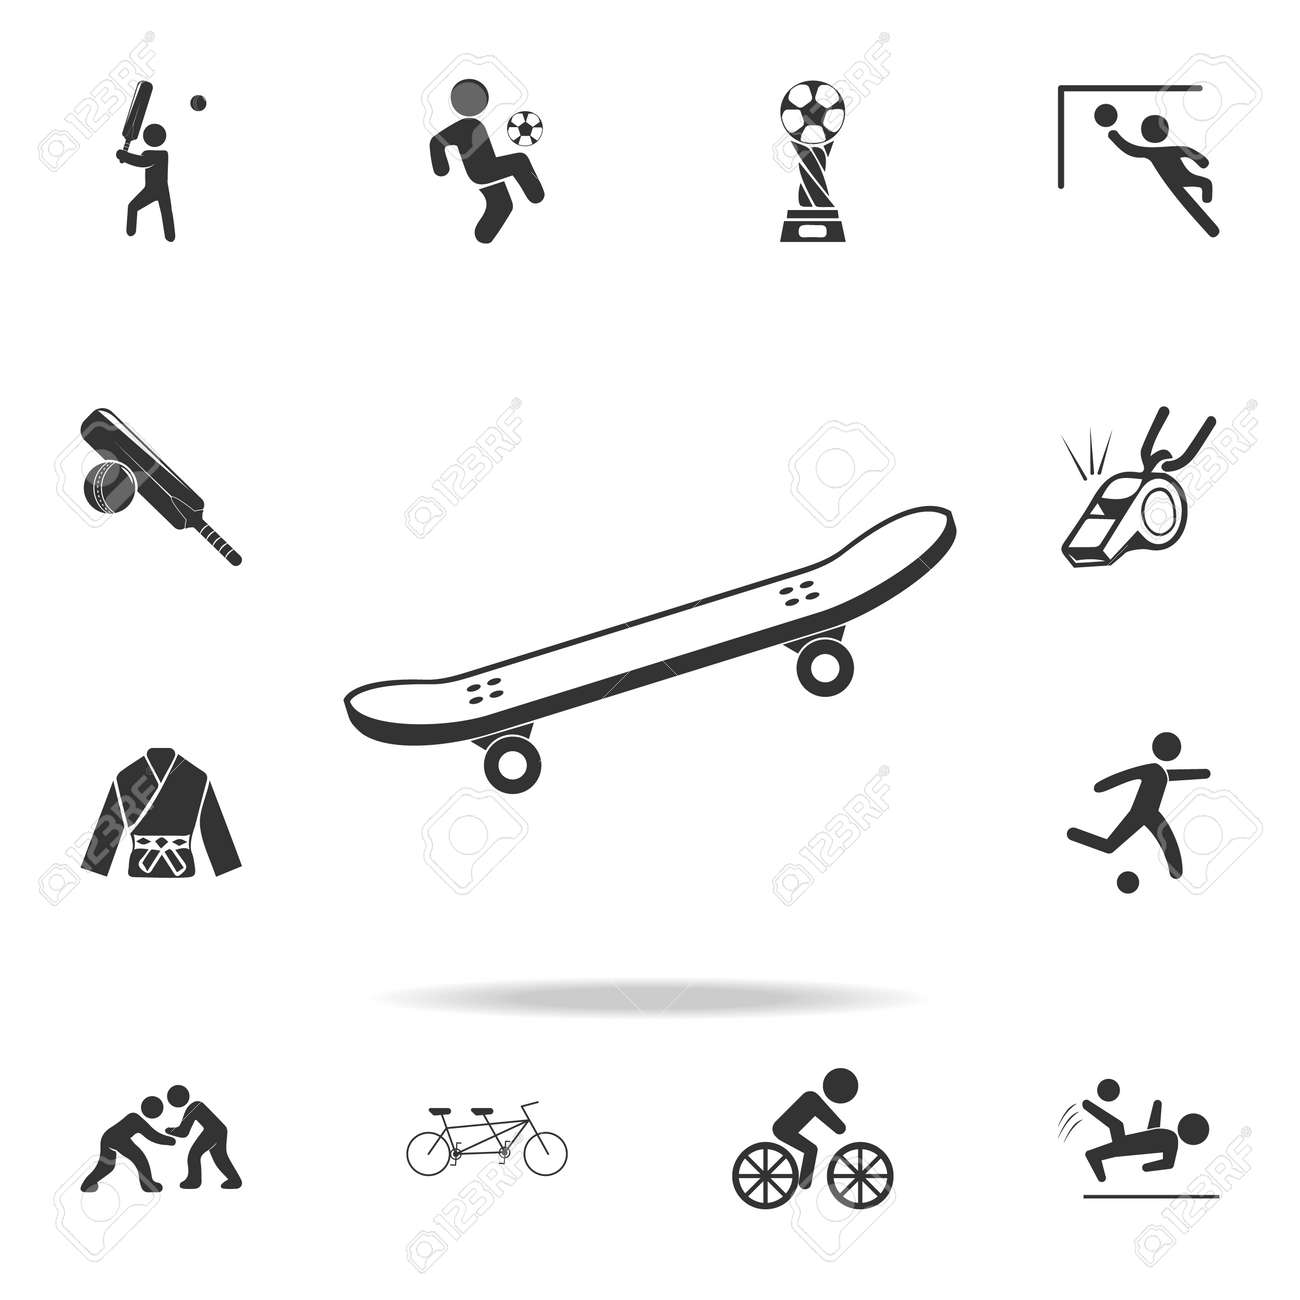 e830d6dc Icon of skateboard. Detailed set of athletes and accessories icons on white  background Stock Vector